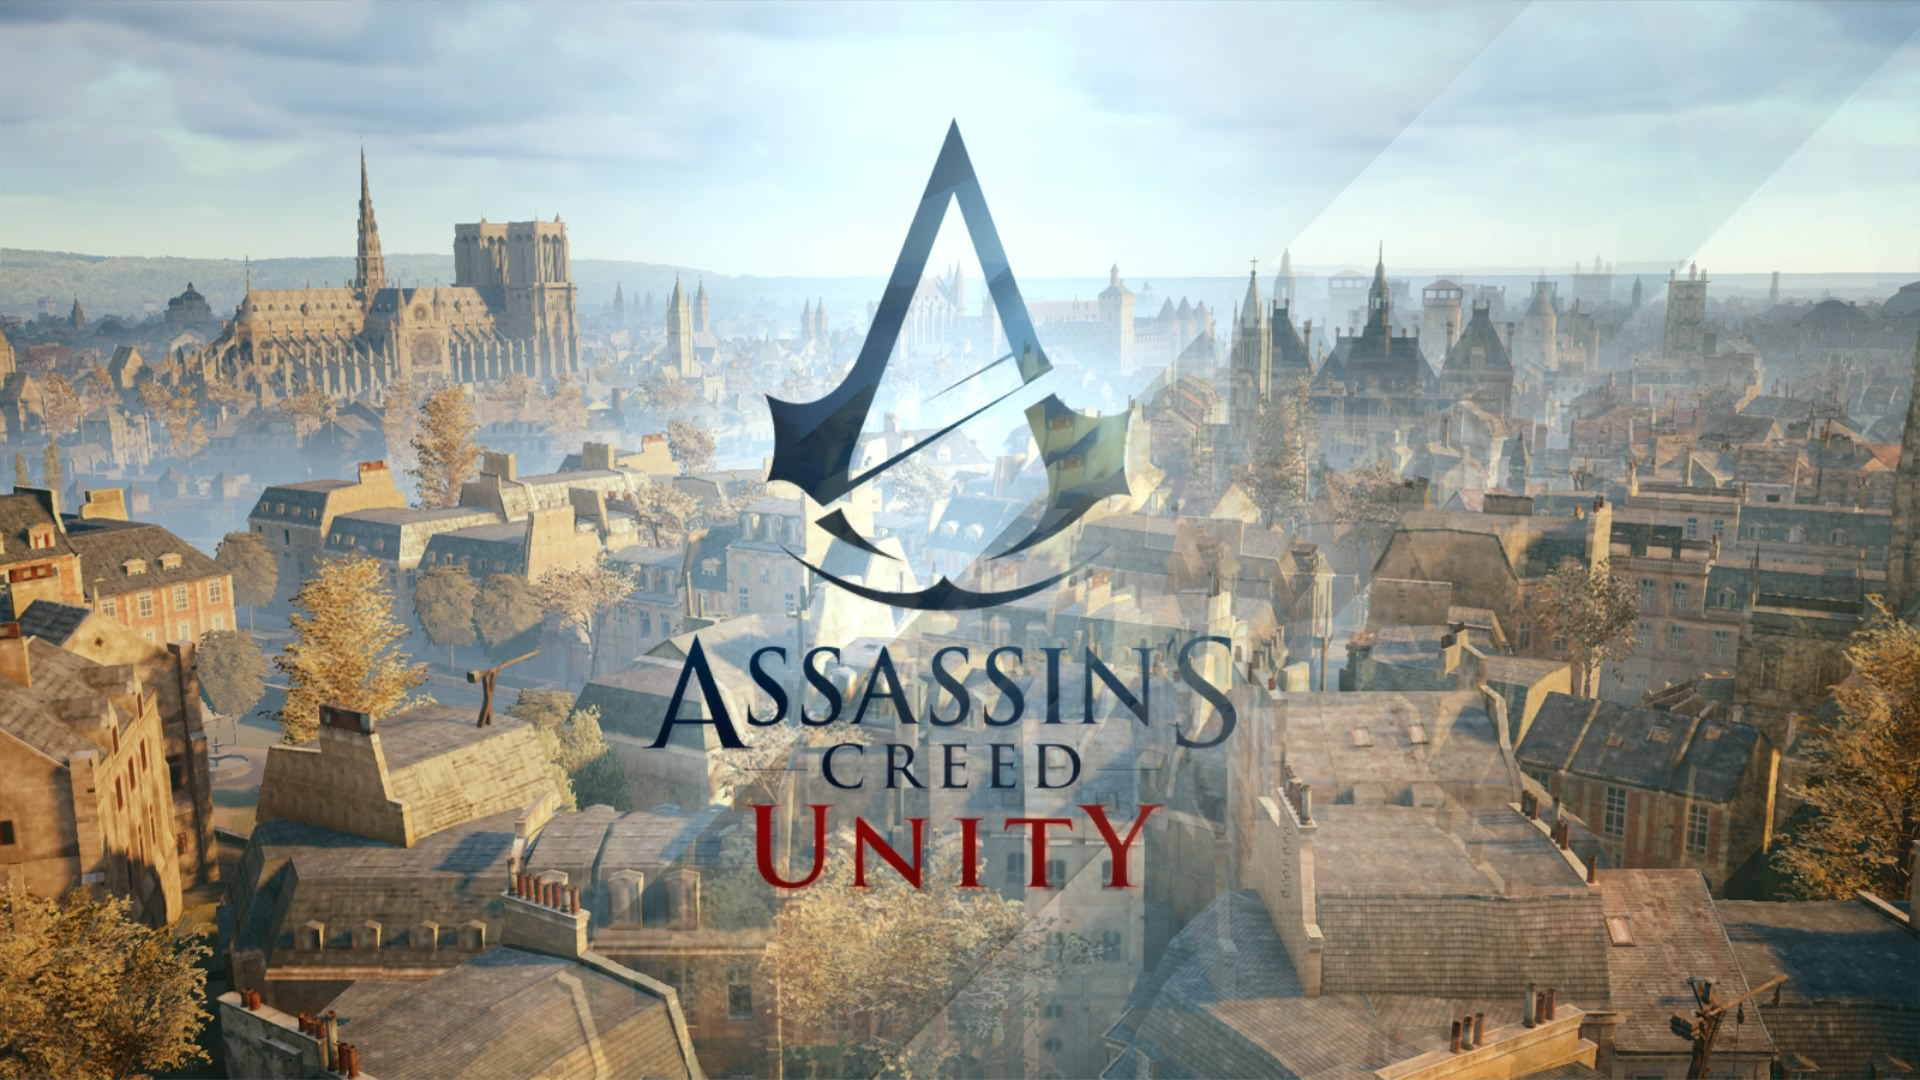 Assassin S Creed Unity When Keeping It Real Goes Wrong Player One Images, Photos, Reviews